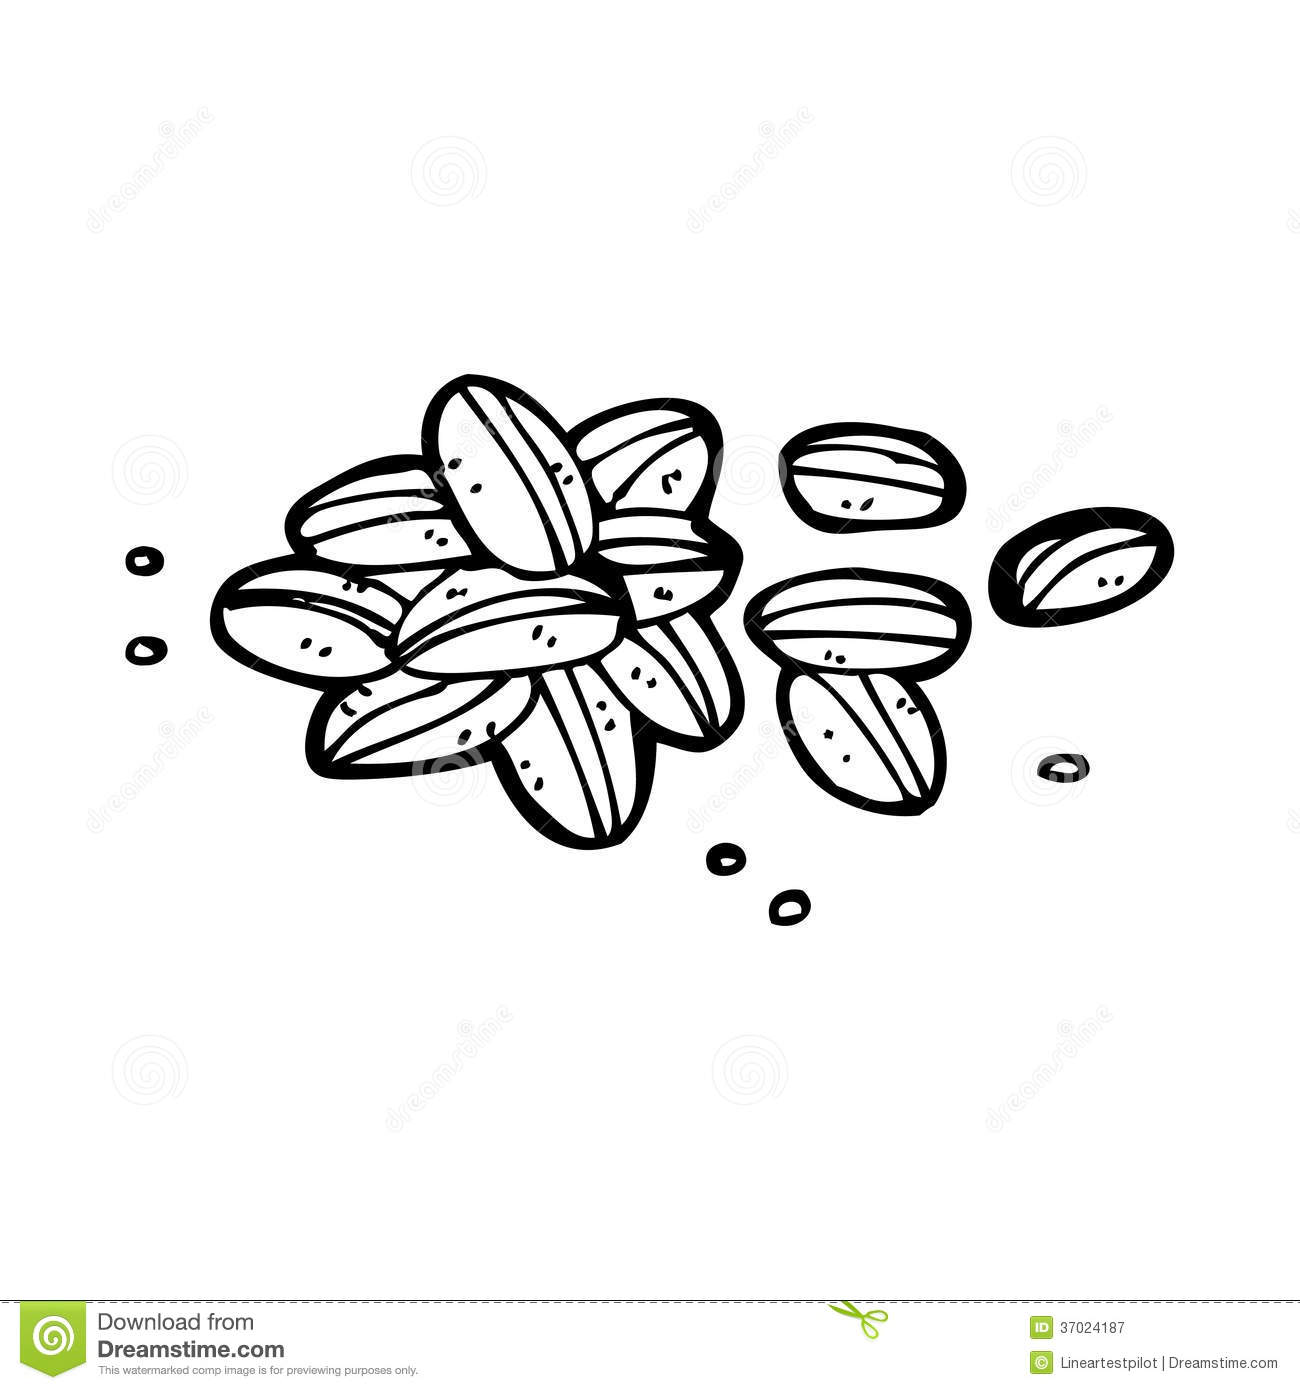 Seeds Clipart Black And White 20 Free Cliparts